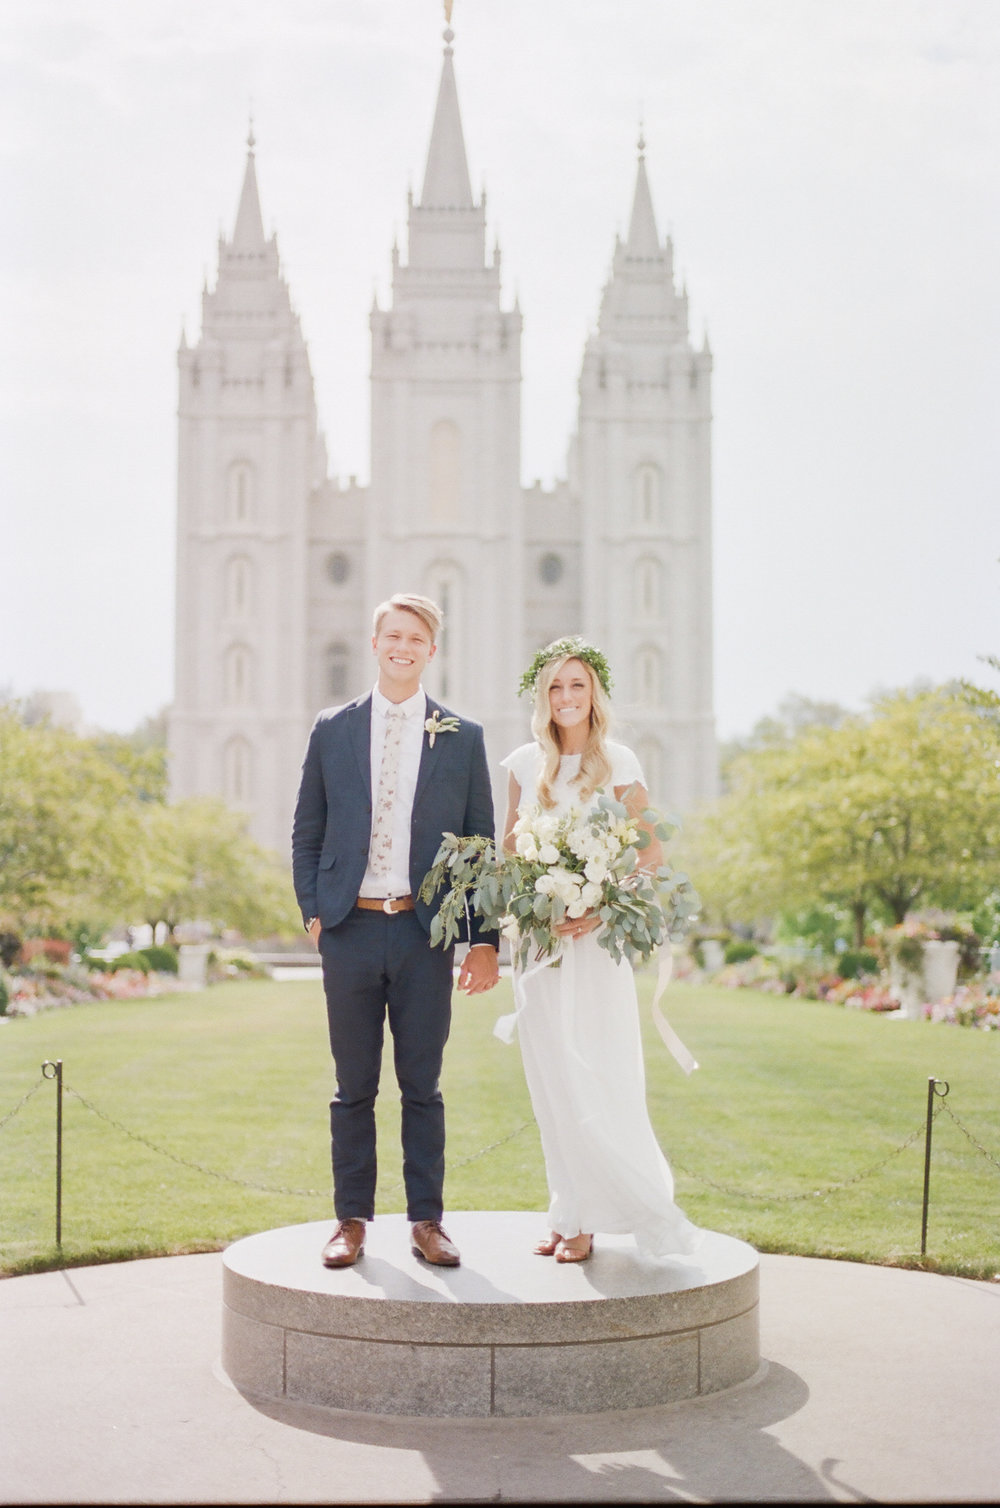 Wynona Benson Photography - Jaleisa & Logan Romantic Elegant Utah Wedding00055.jpg